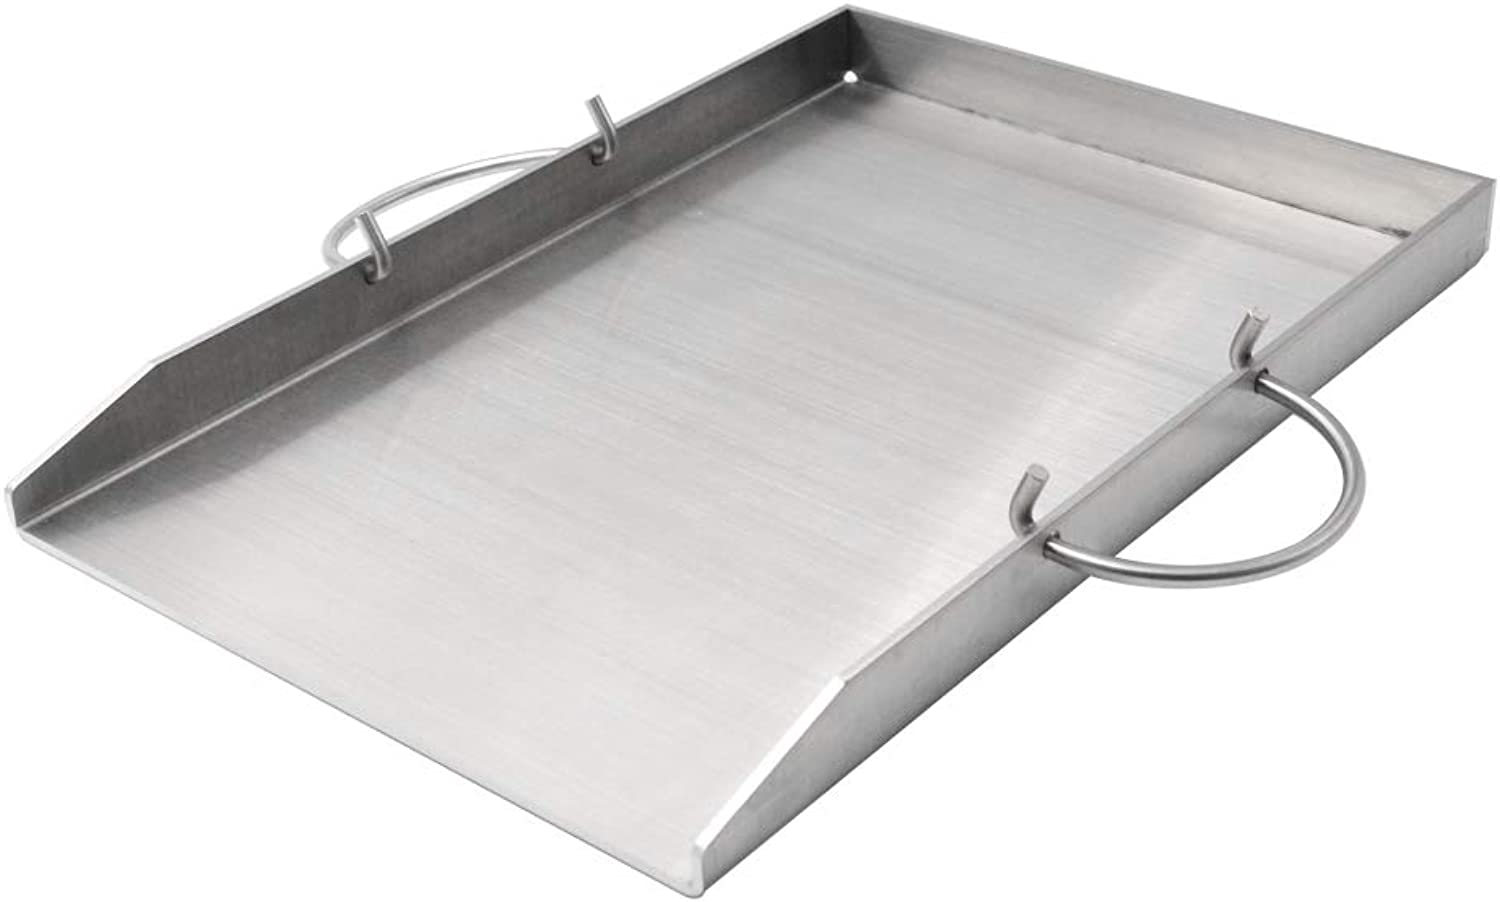 Stanbroil Stainless Steel Griddle Pan with Holder Replacement Weber 7599 Fits Weber Genesis II 300 Series Grills